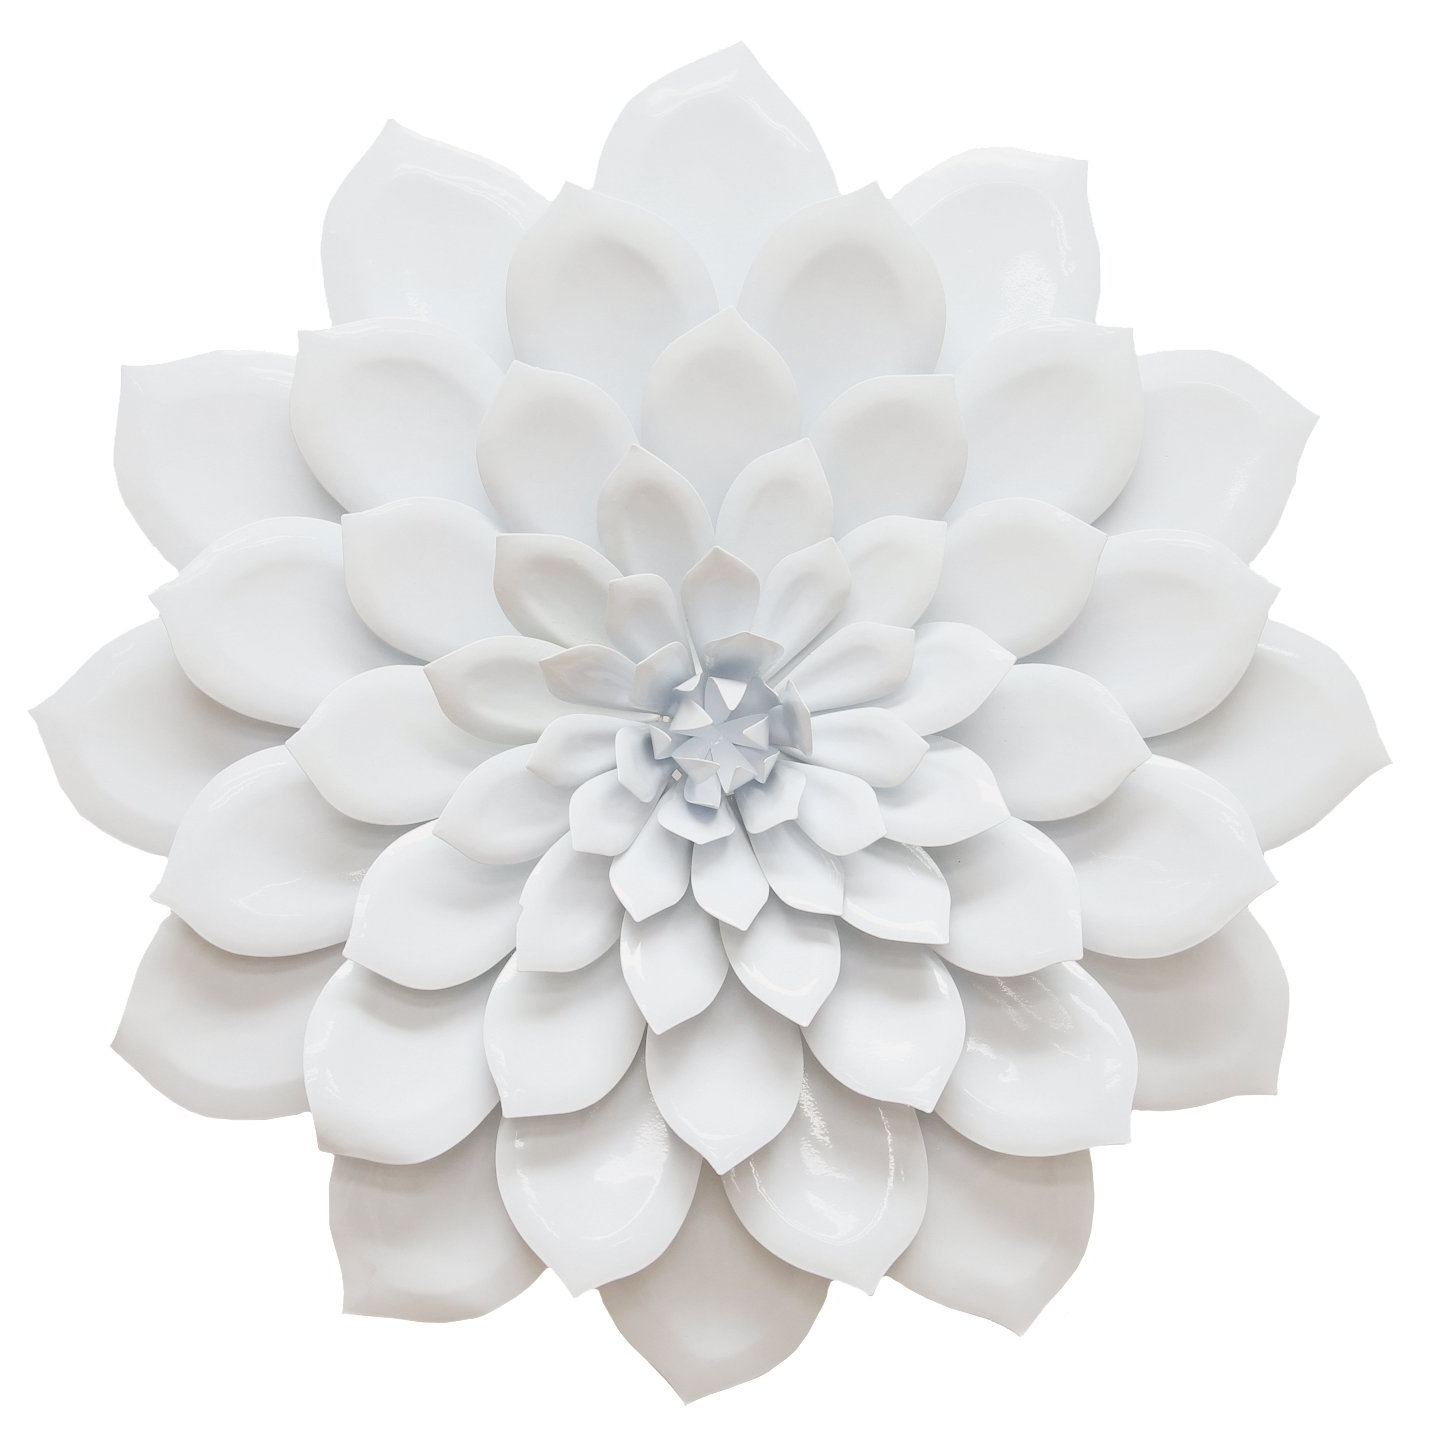 Flowers Wall Accents In Most Current Amazon: Stratton Home Decor Shd0018 Layered Flower Wall Decor (View 5 of 15)